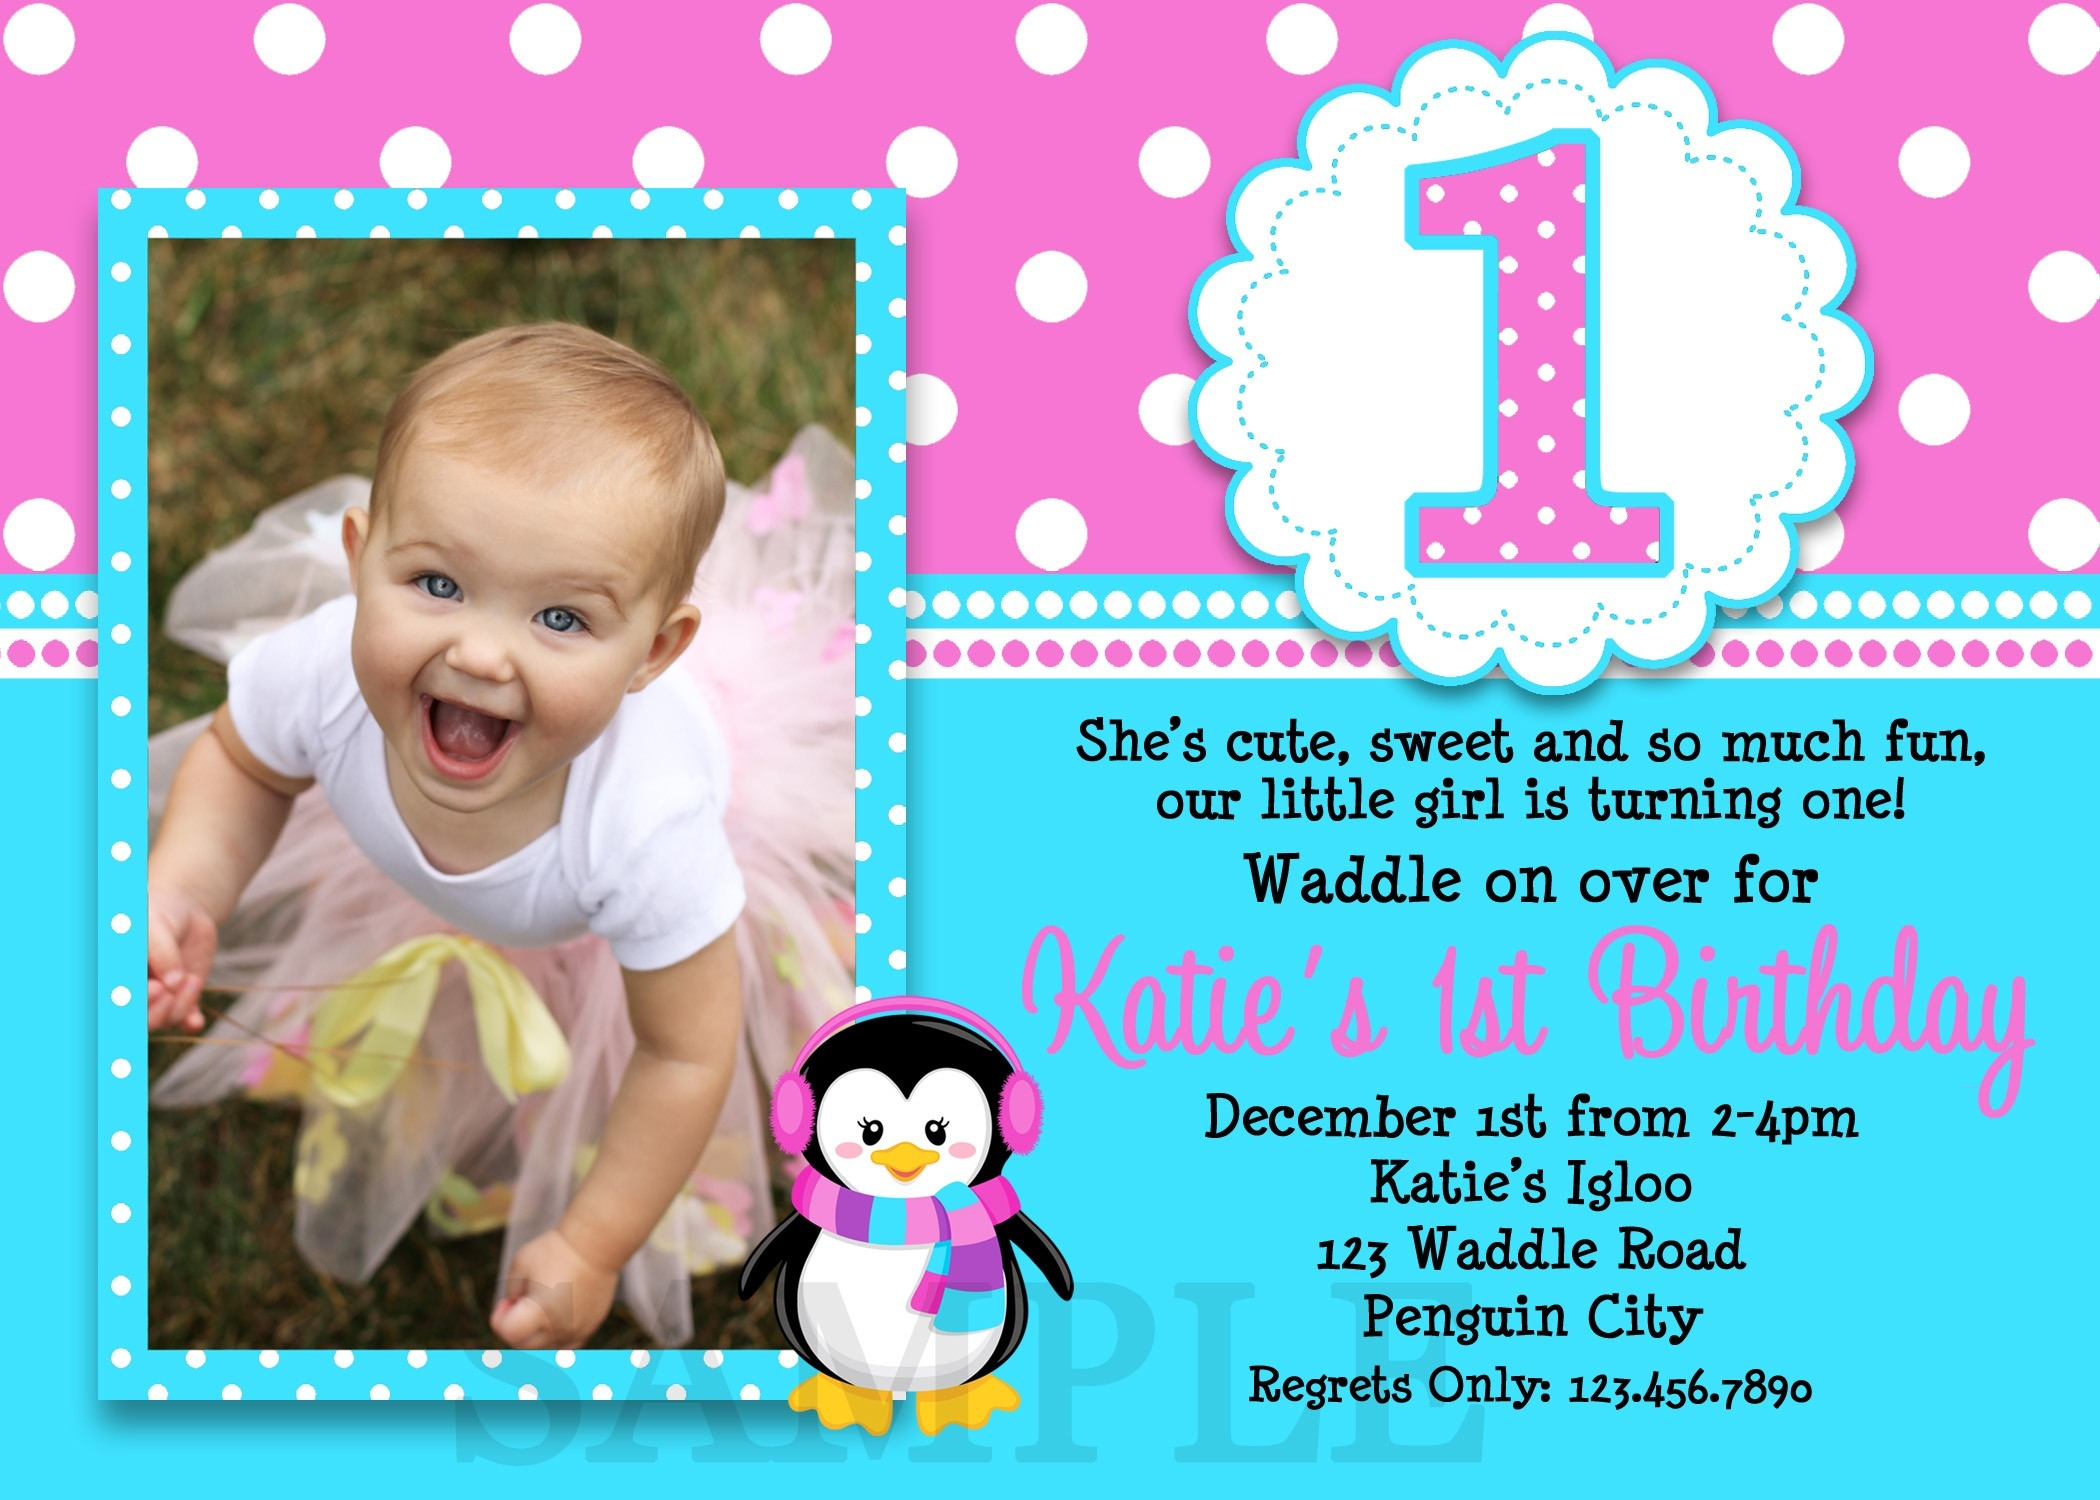 1st birthday invitation cards for daughter ; design-daughter-birthday-invitation-sms-plus-editable-1st-with-editable-1st-birthday-invitation-cards-templates